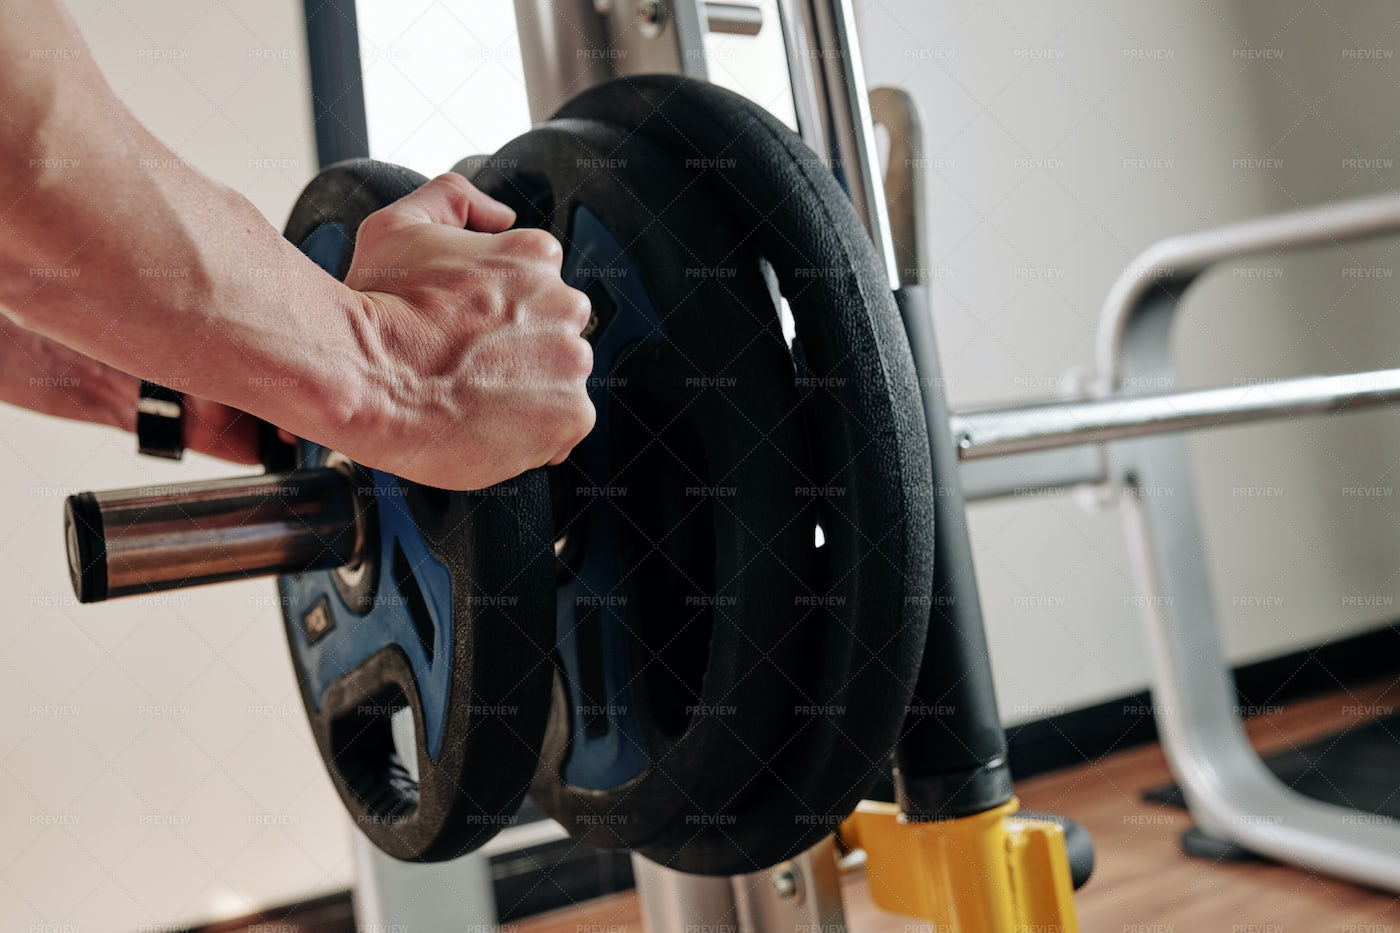 Putting Weight Plates On Barbell: Stock Photos